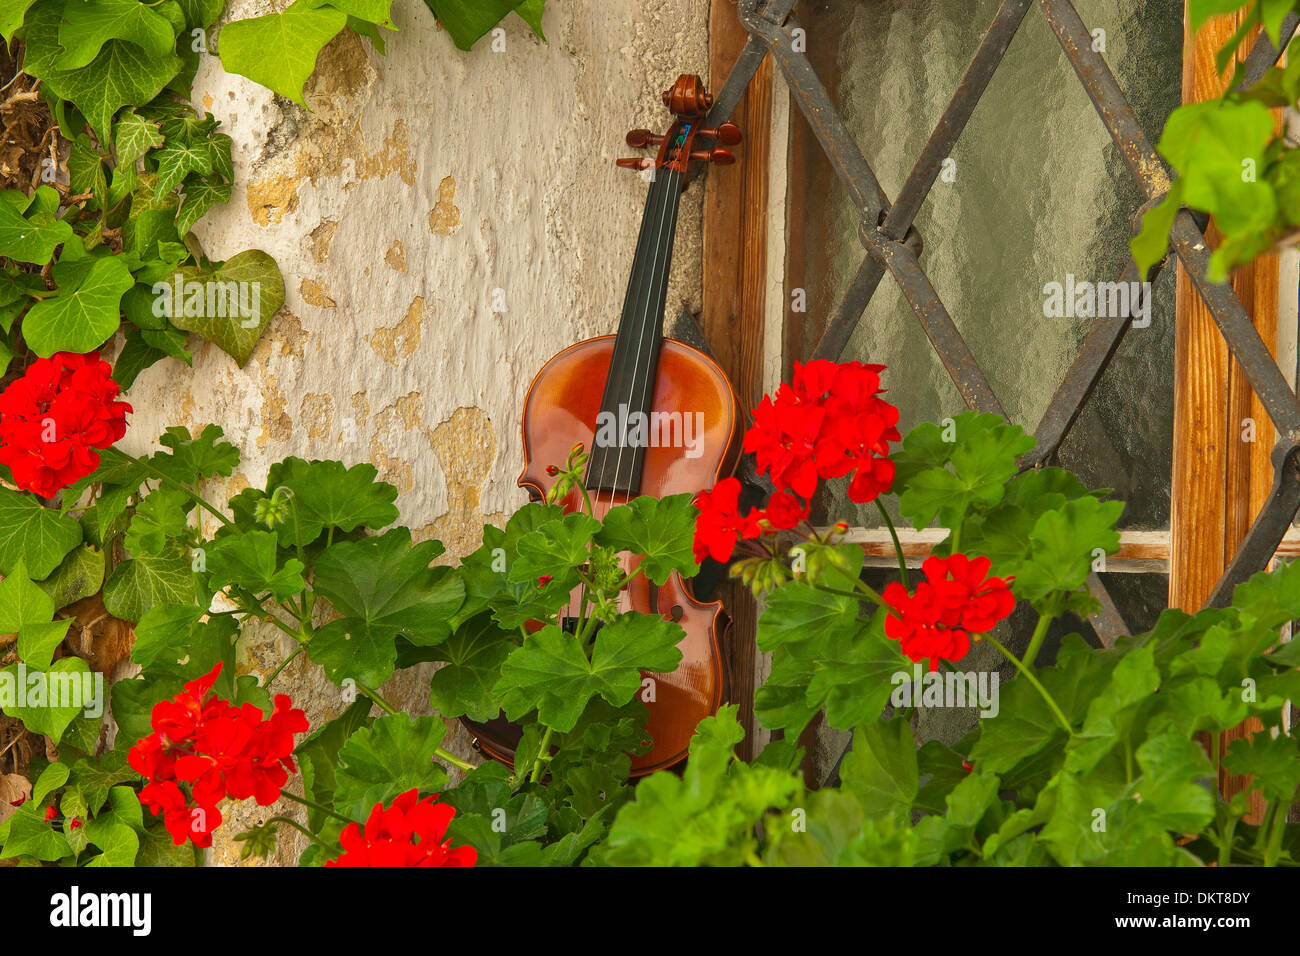 Bavaria Germany Europe Upper Bavaria Berchtesgaden country Anger Höglwörth Hoeglwoerth window geraniums window cross music - Stock Image